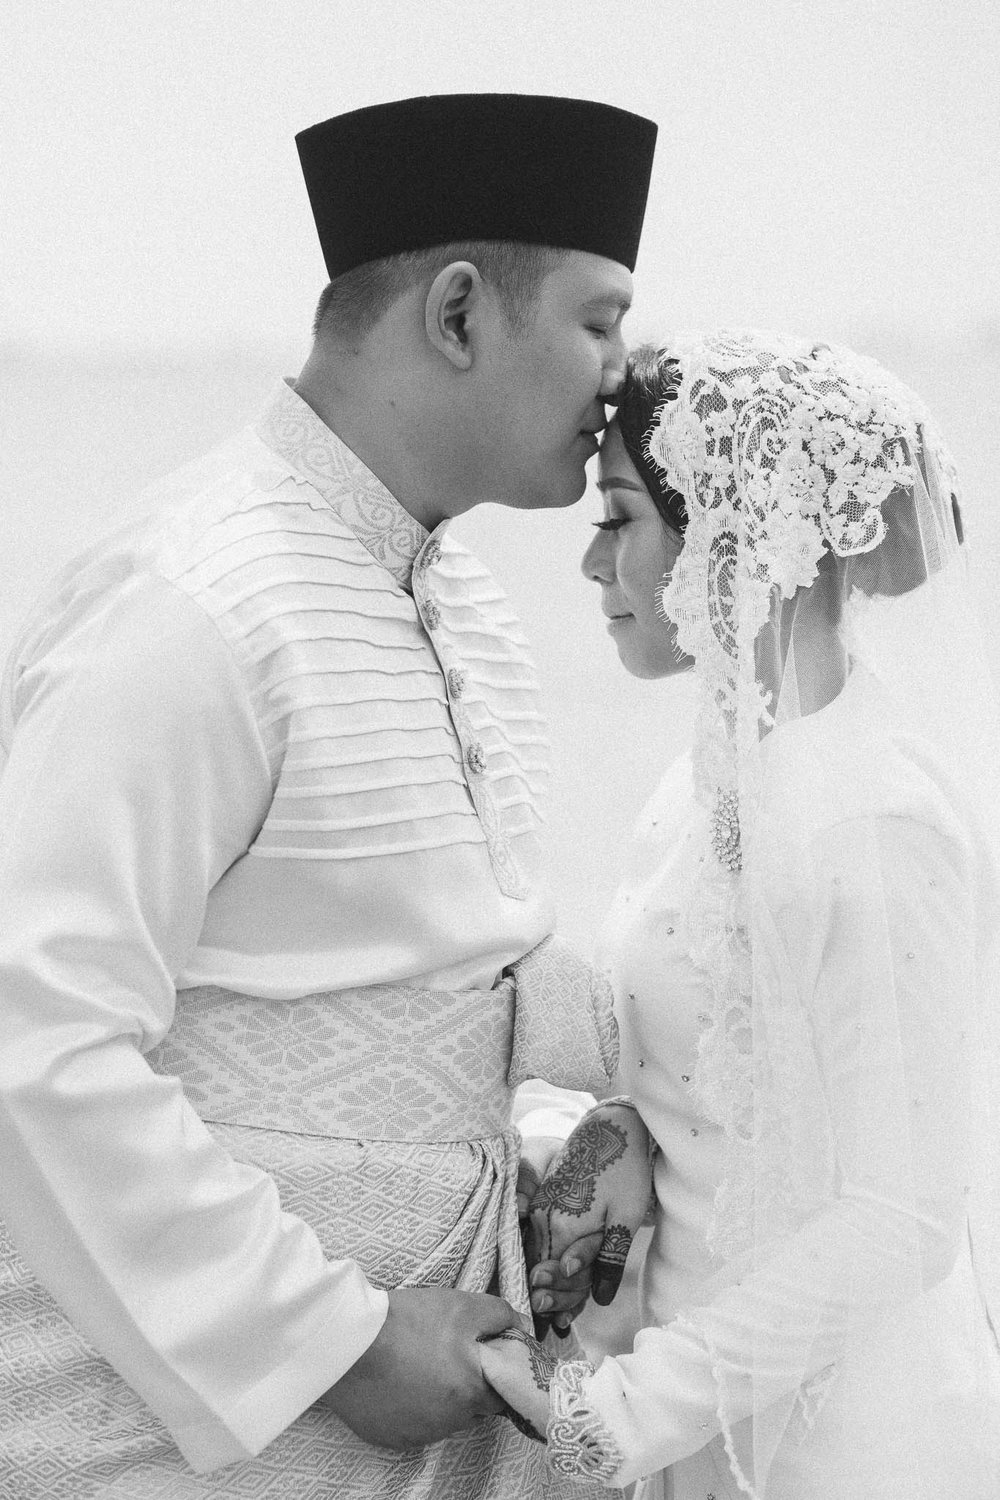 singapore-wedding-photographer-hafidz-hazlin-24.jpg